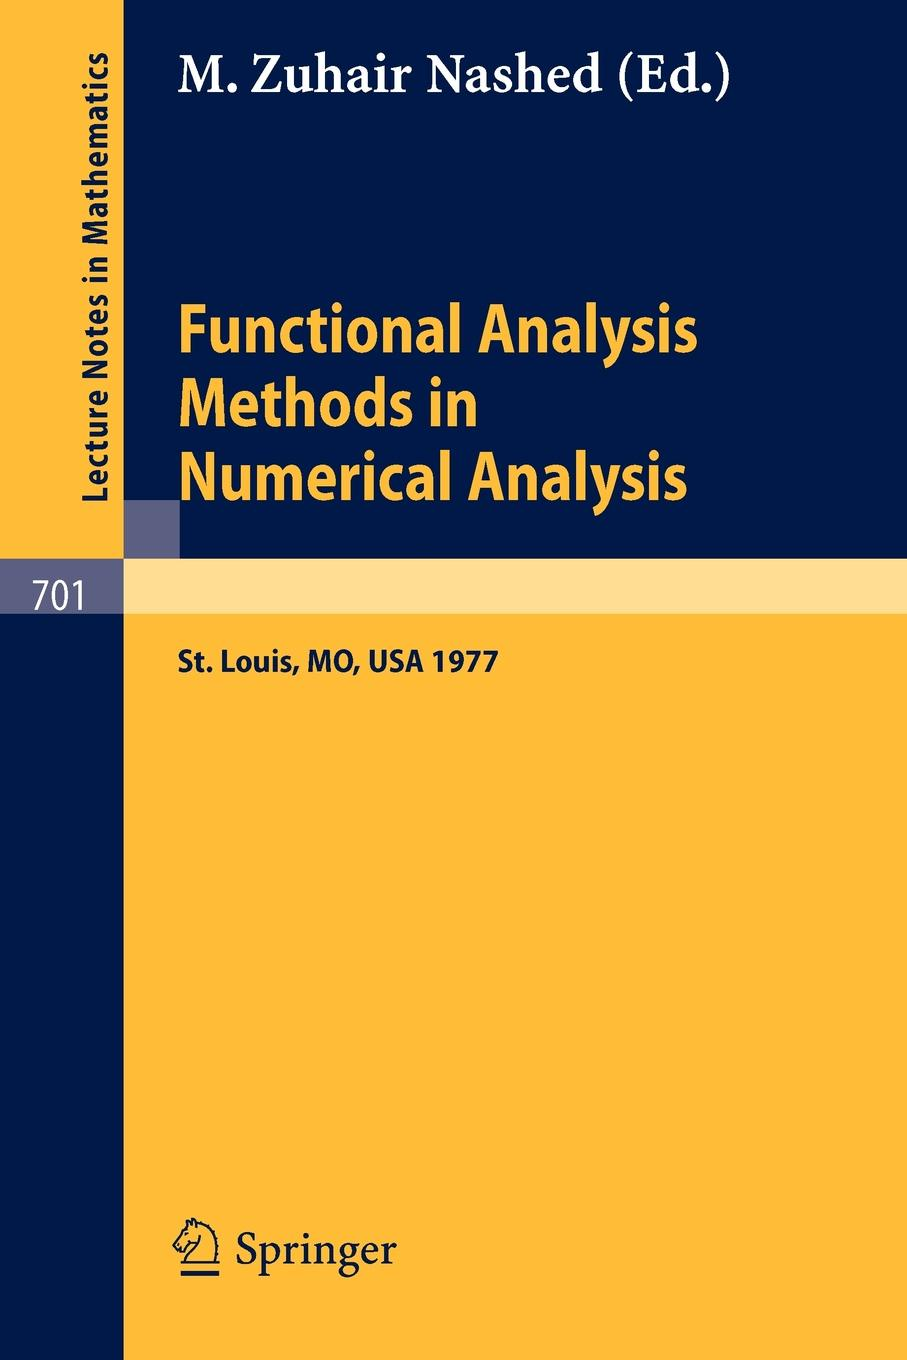 Functional Analysis Methods in Numerical Analysis. Special Session, American Mathematical Society, St. Louis, Missouri, 1977